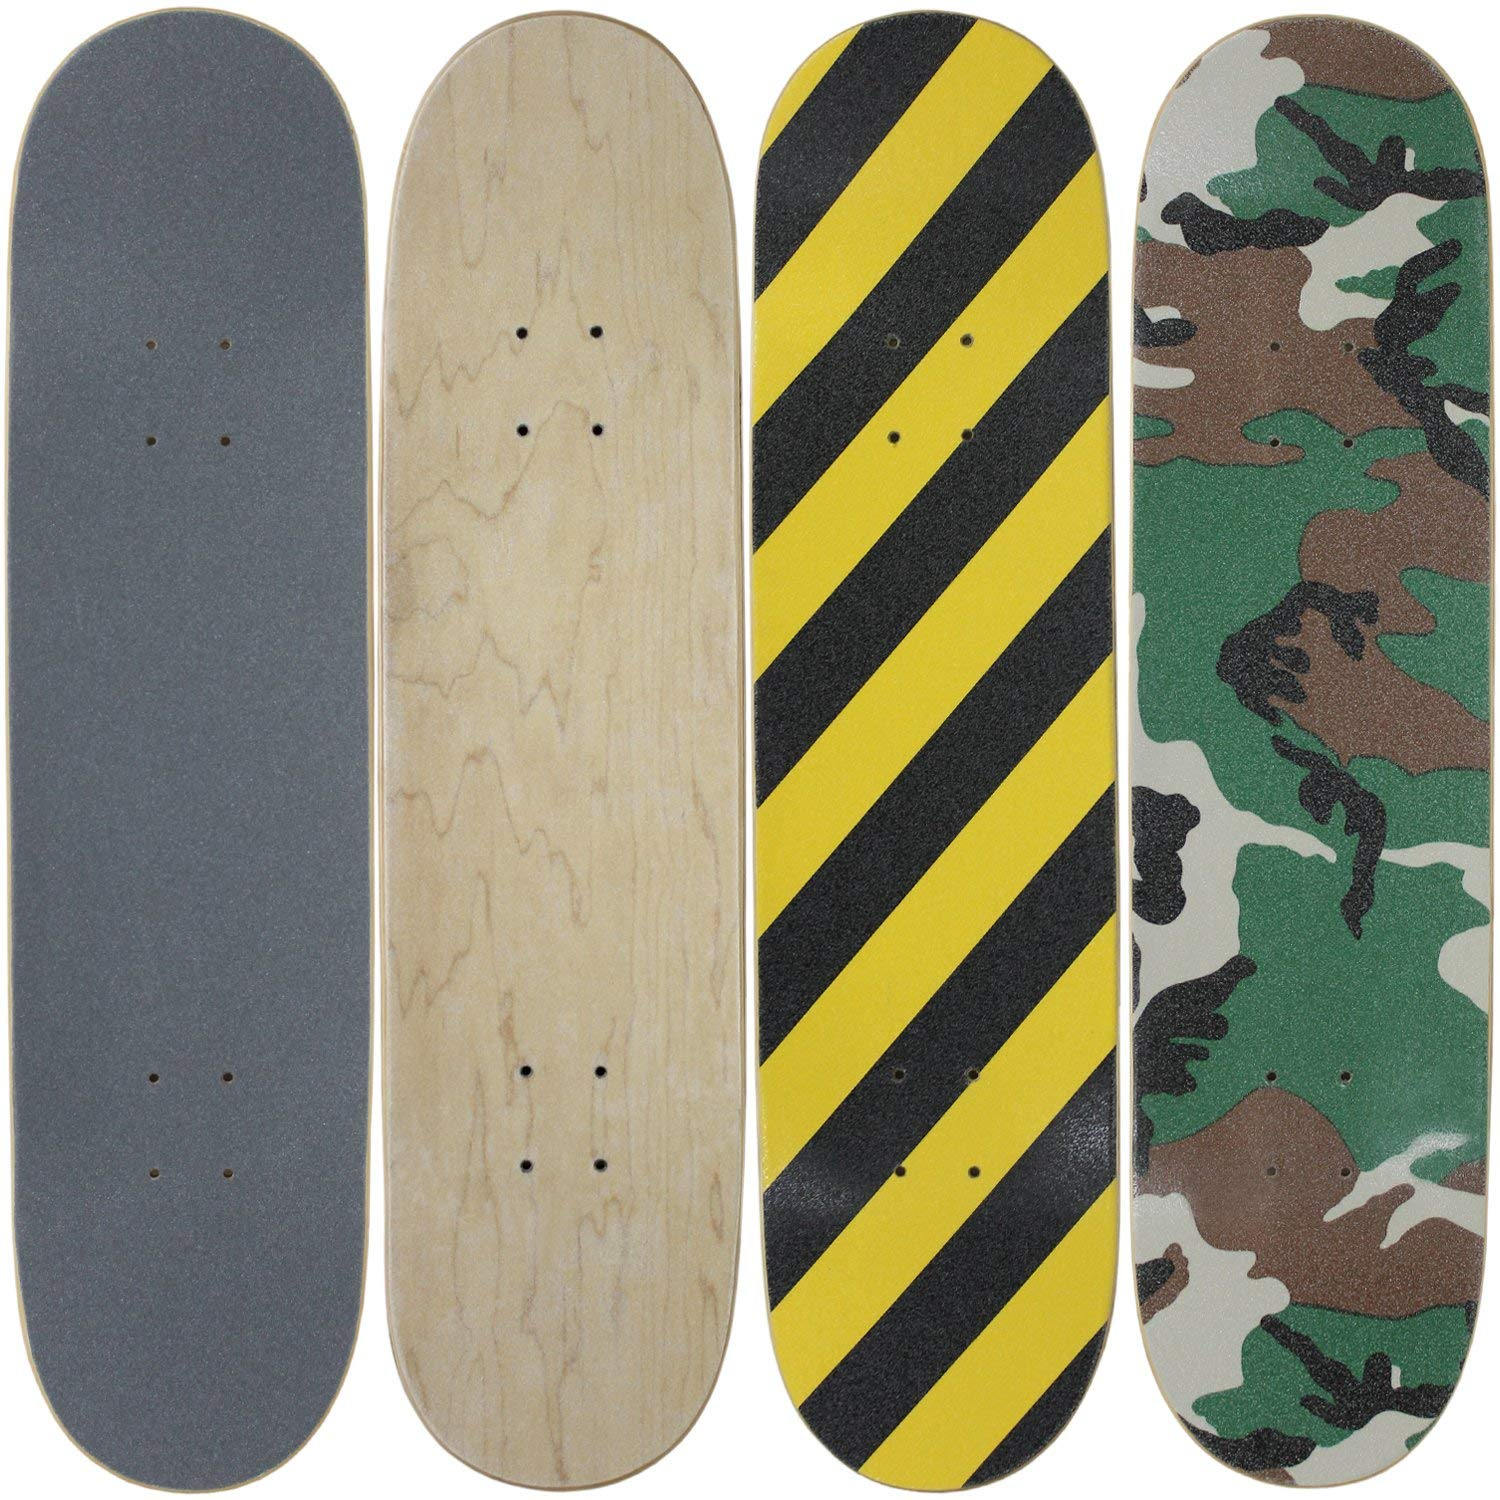 "Moose 4 Blank Skateboard Decks 8.0"" Natural Pre-Gripped Patterns BULK LOT"